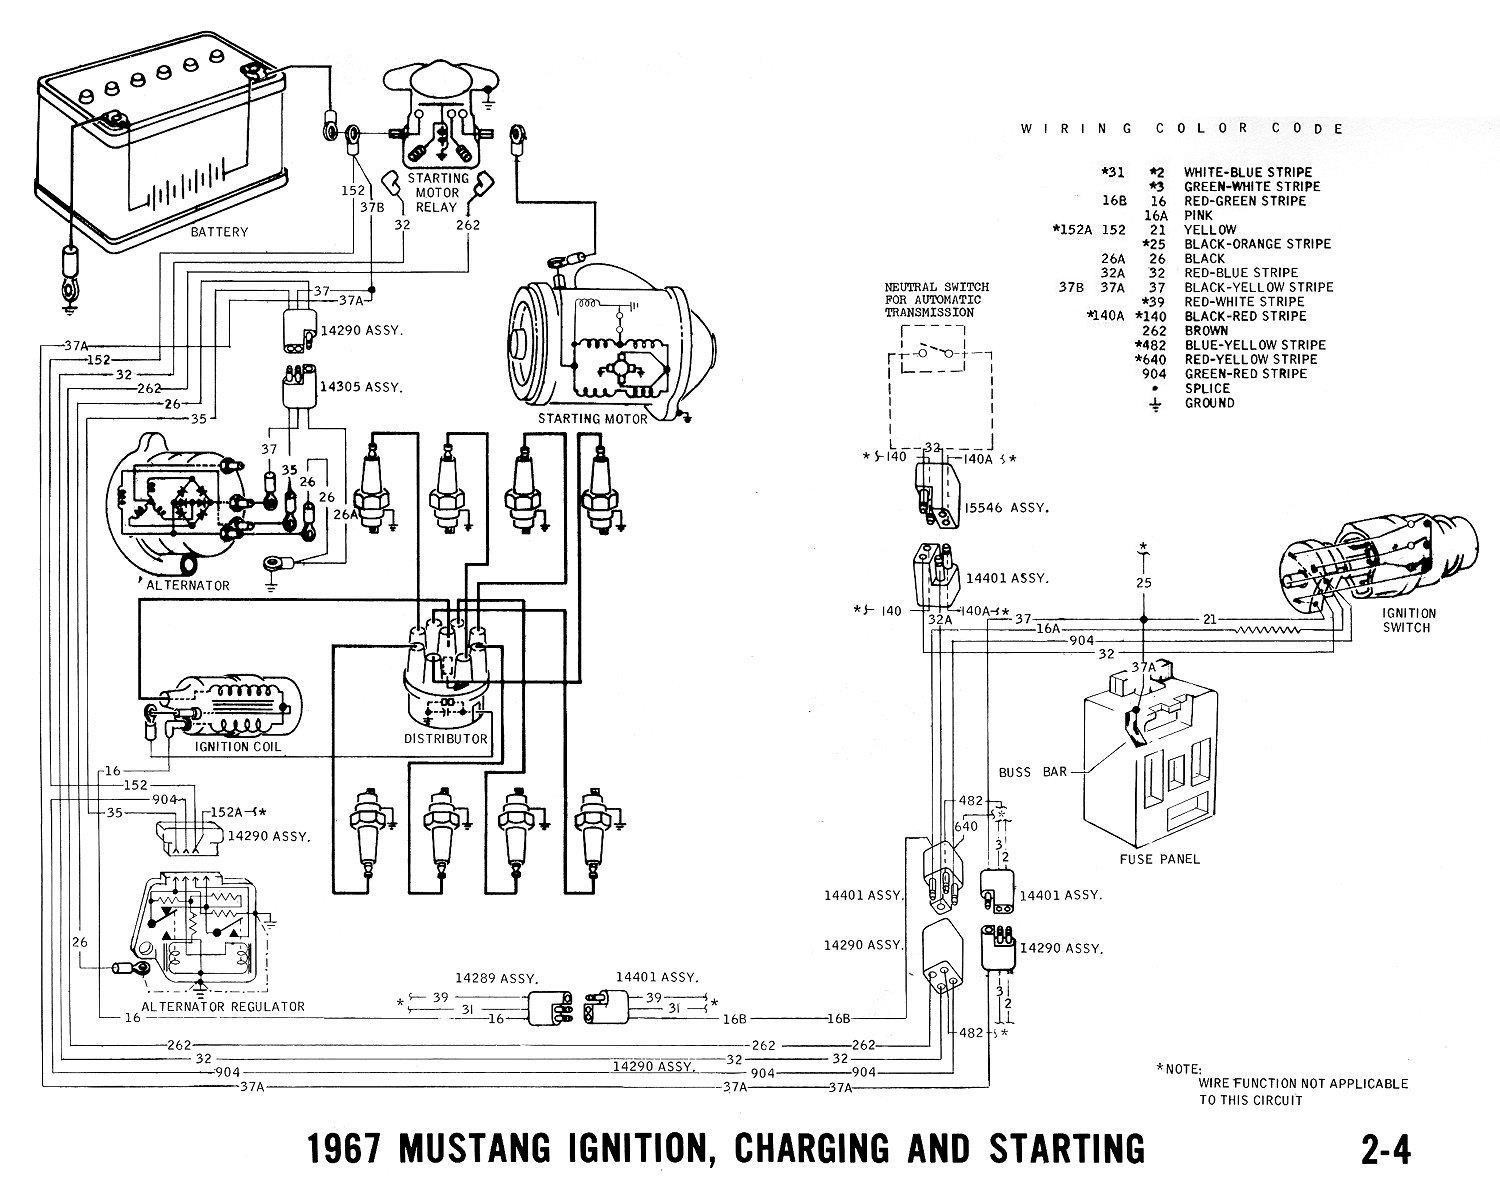 1979 Corvette Alternator Wiring Diagram Electrical 1968 For Starter Mustang Furthermore Rh Protetto Co 1971 Pdf 1998